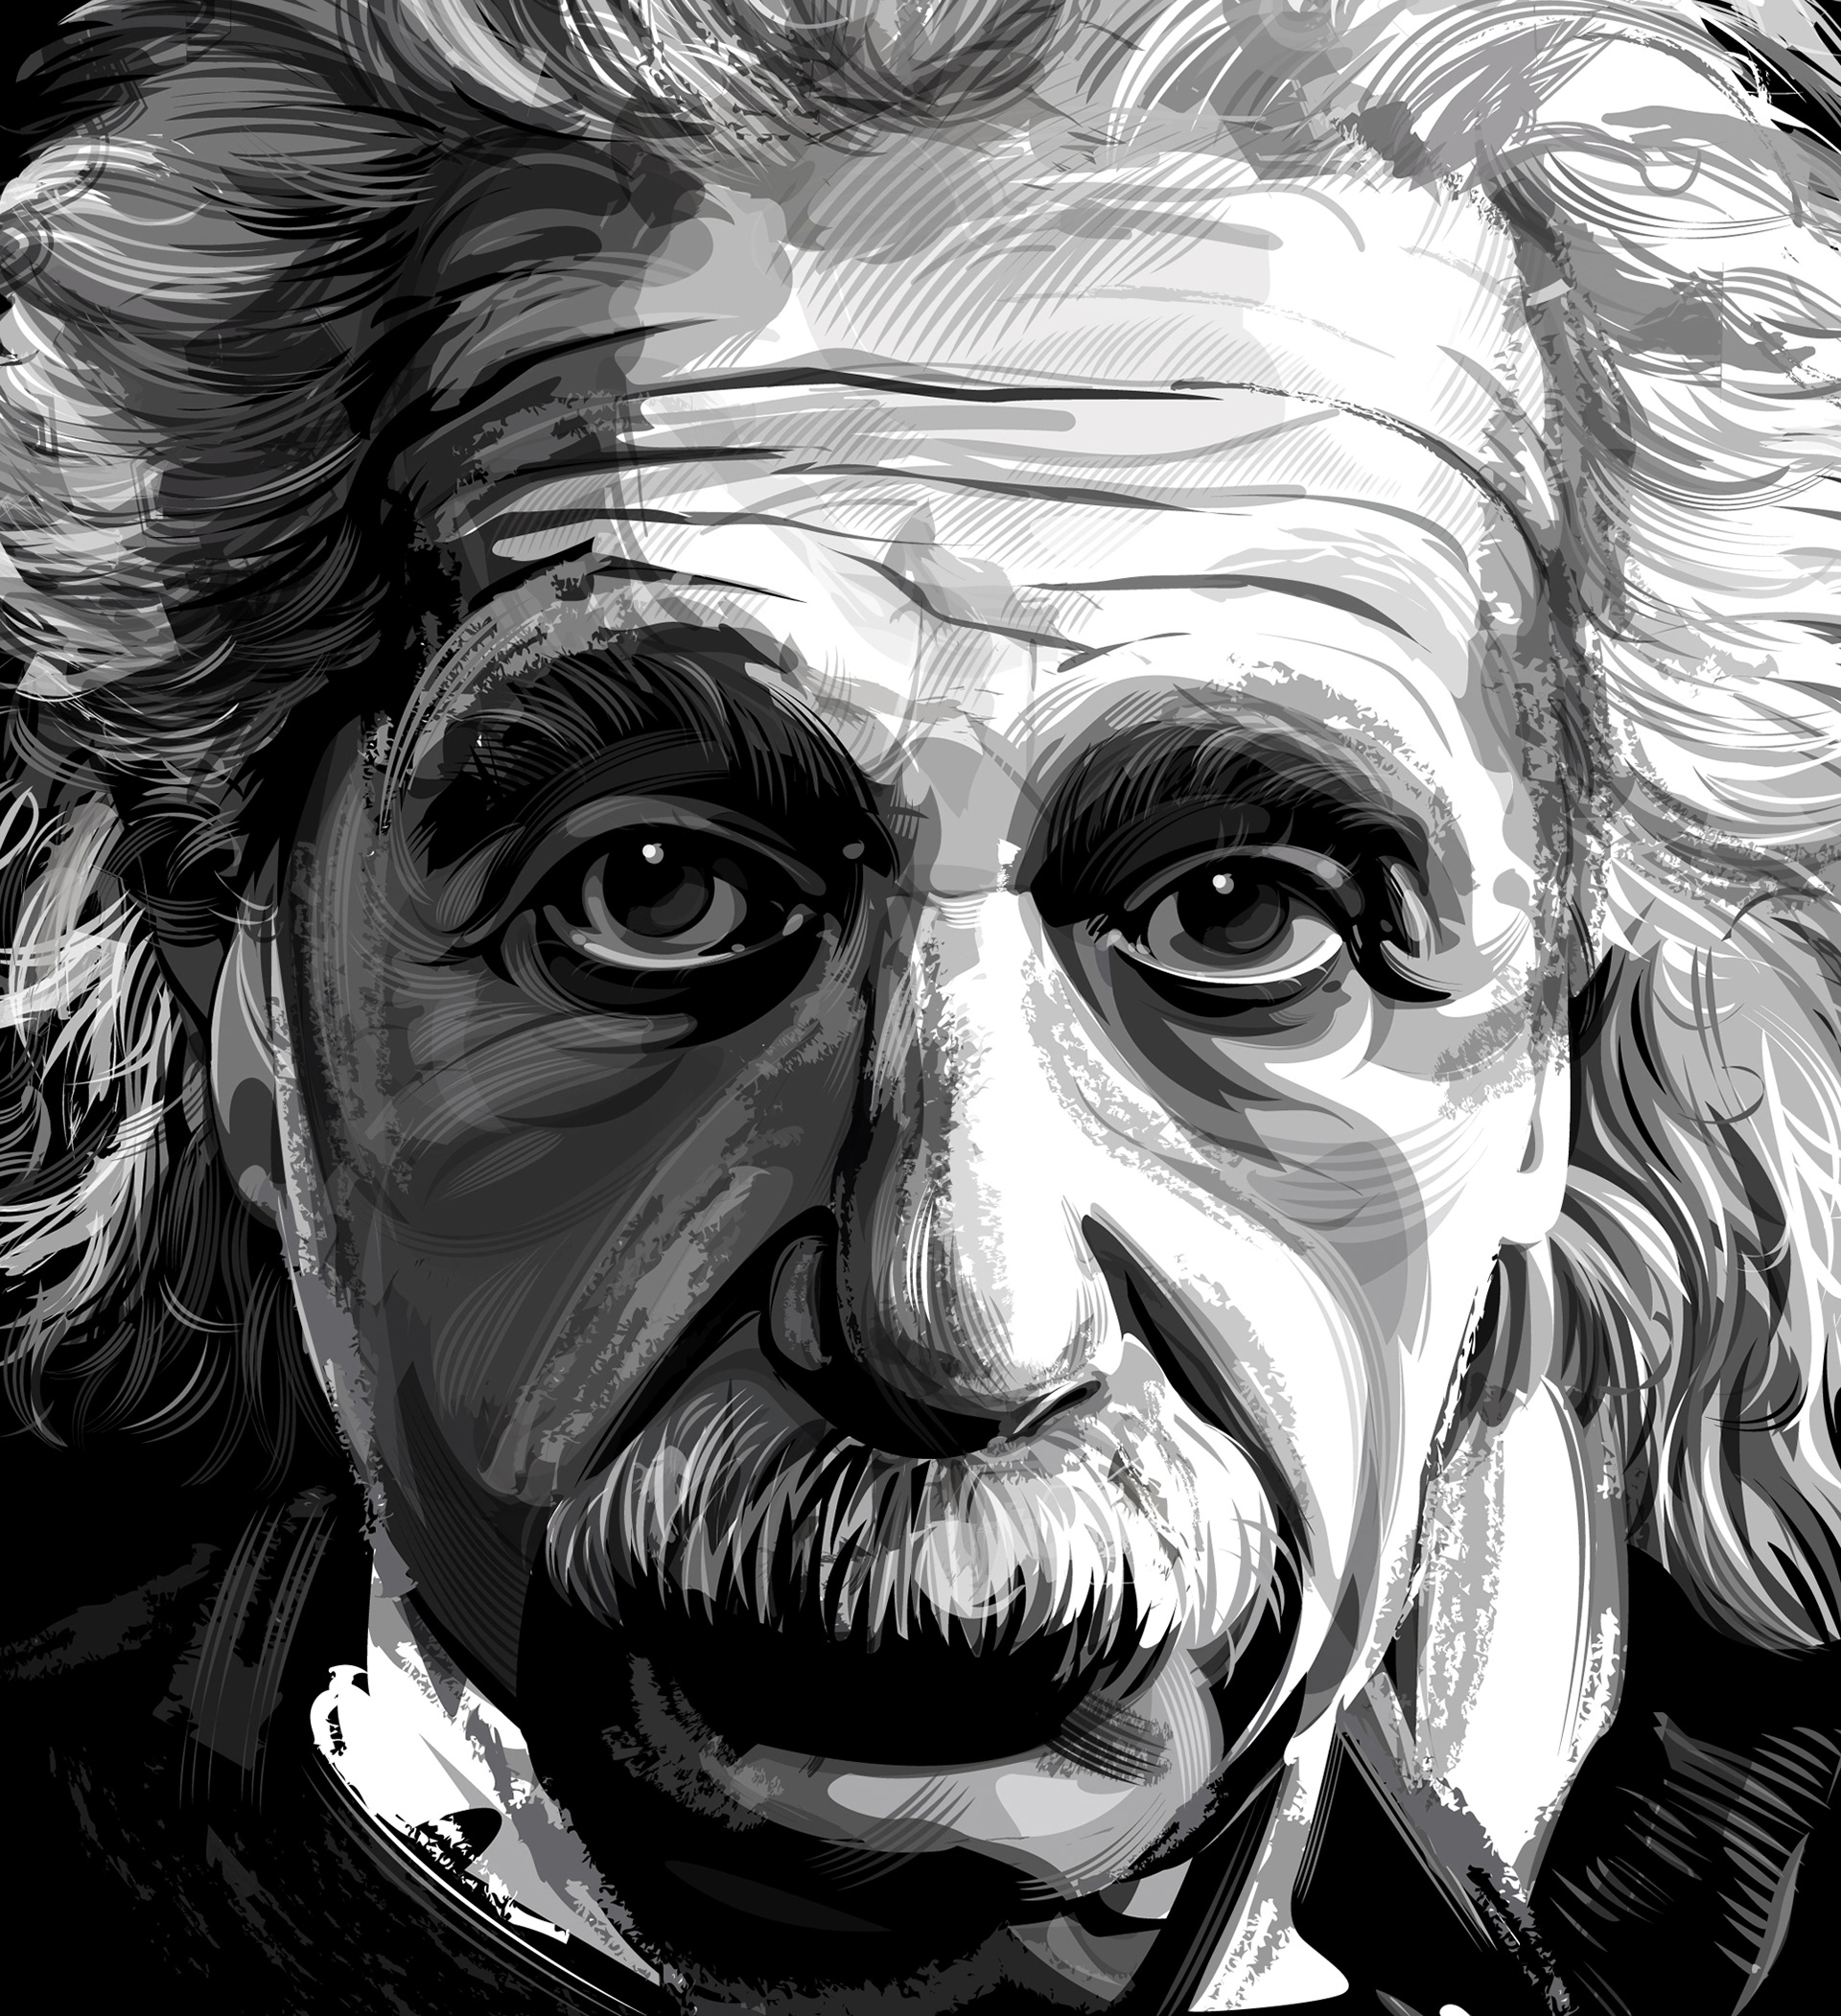 Germanborn physicist and developer of the theory of relativity Albert Einstein Albert Einstein in 1921 Born 18790314 14 March 1879 Ulm Kingdom of Württemberg